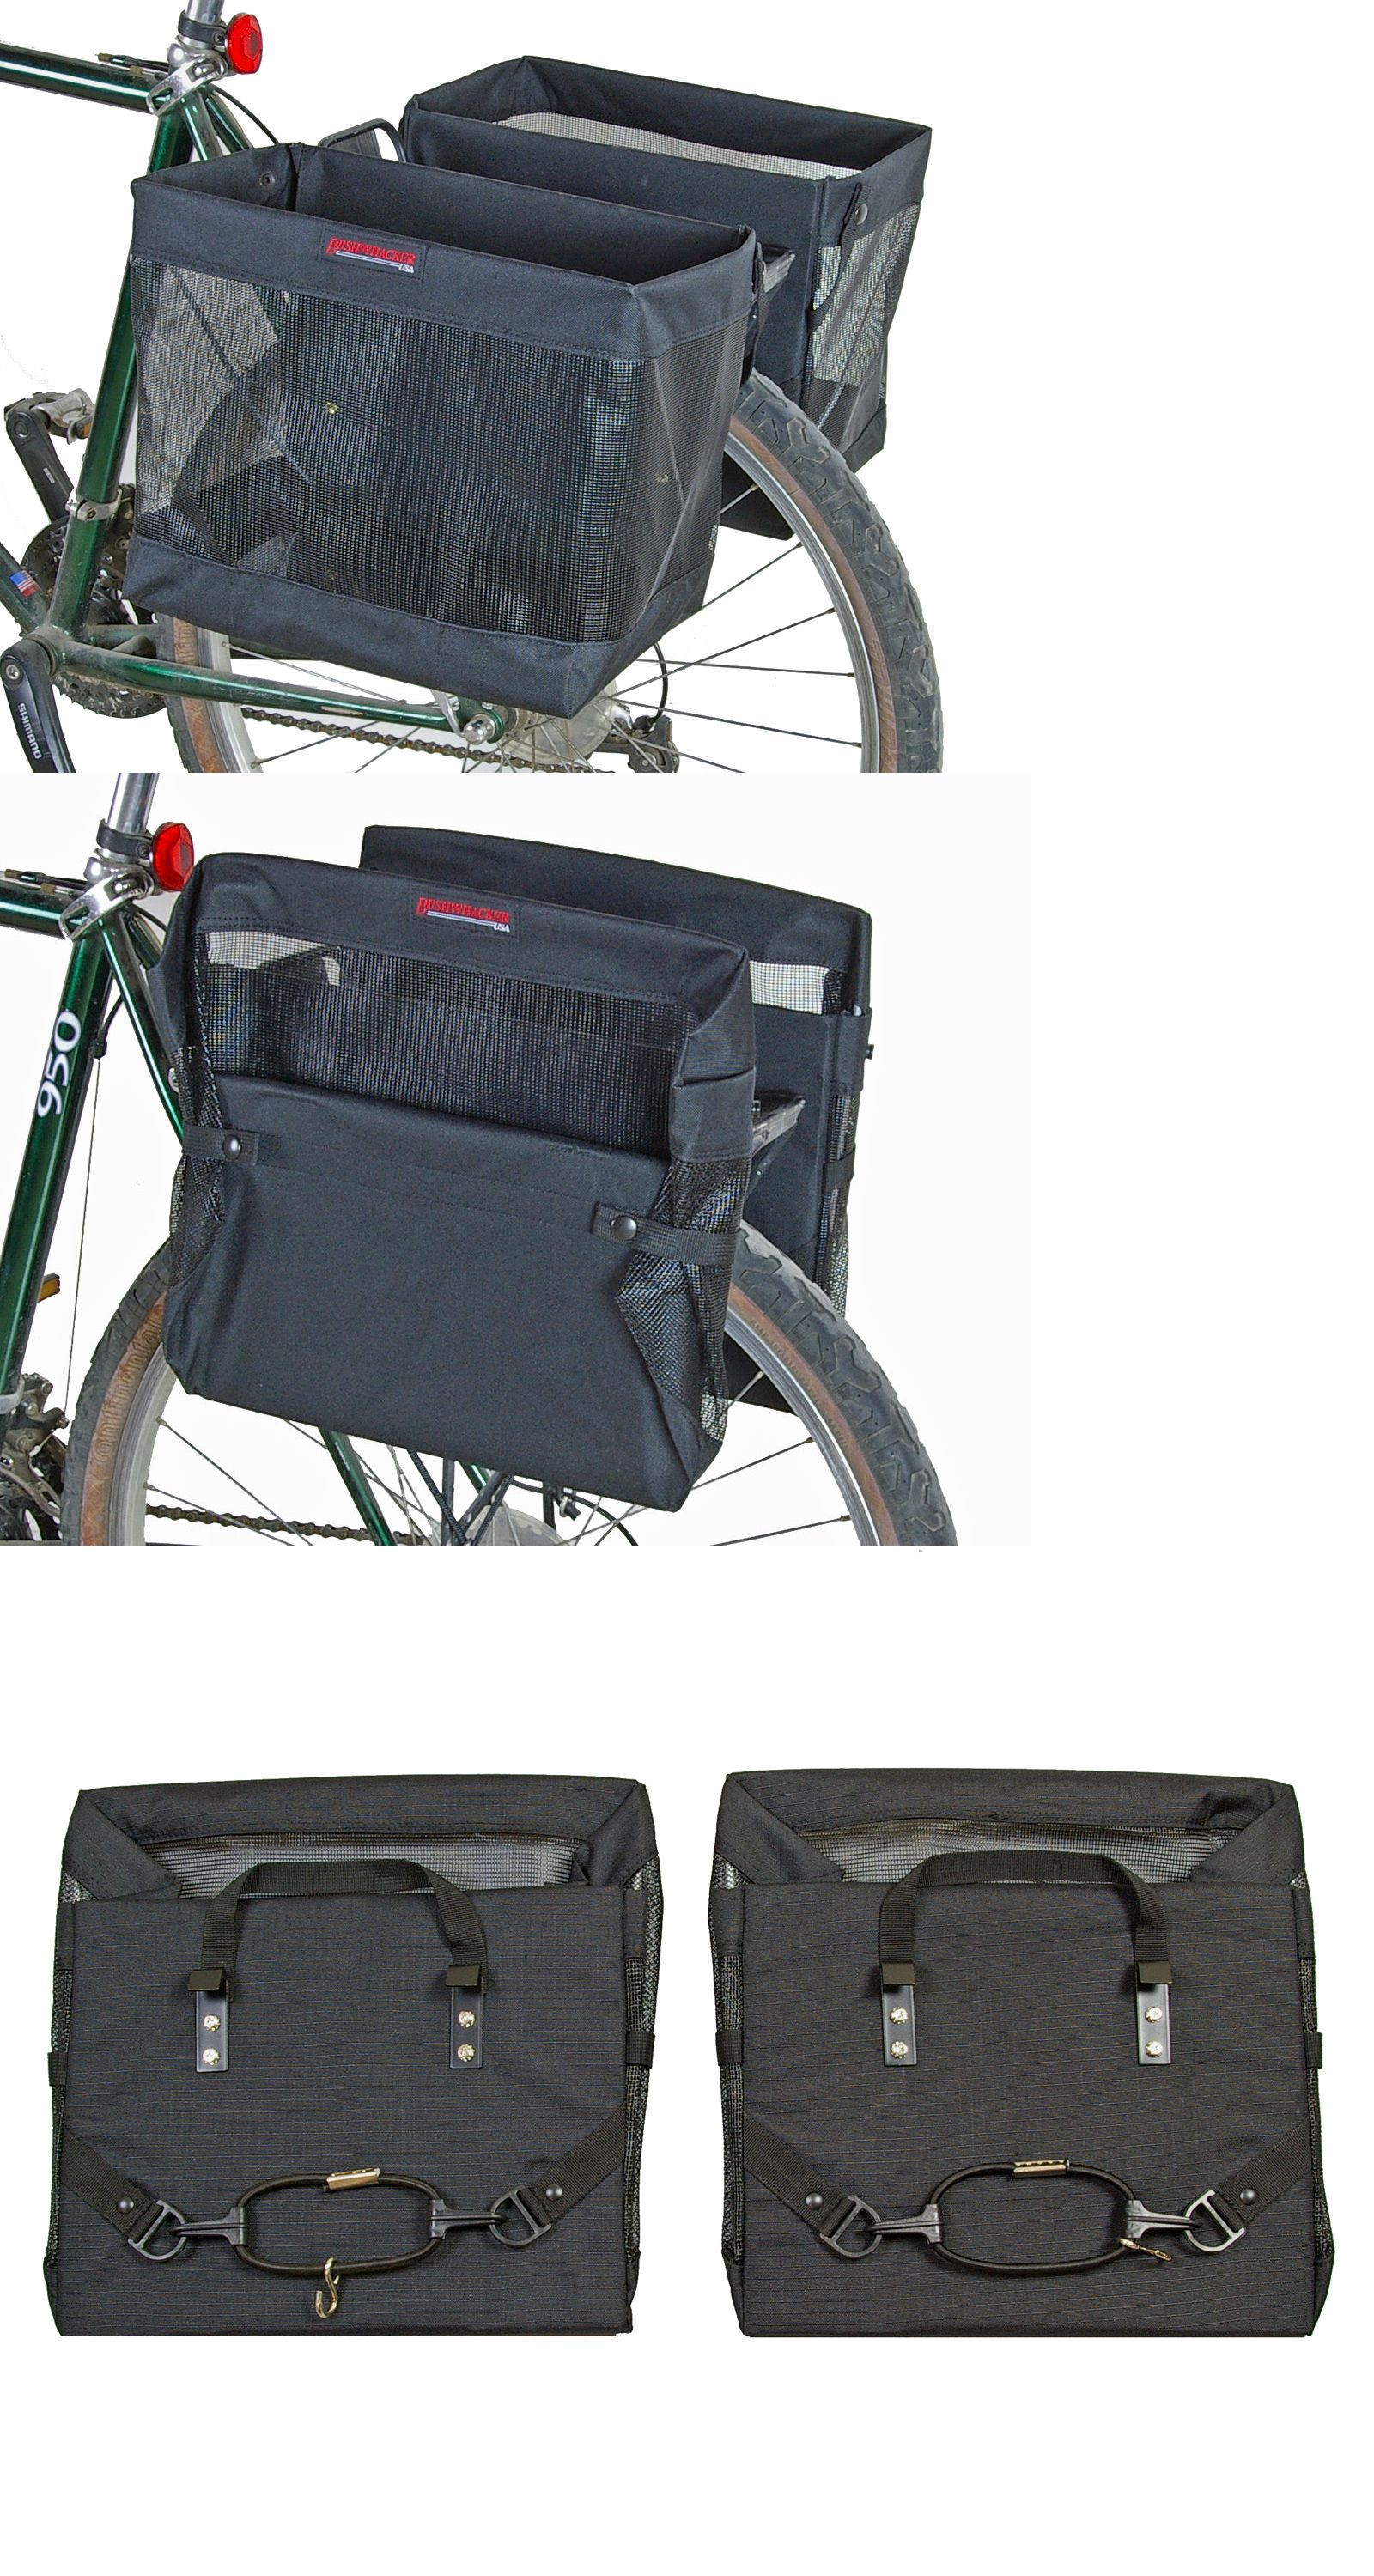 Bags And Panniers 177833 Bushwhacker Omaha Bike Grocery Basket